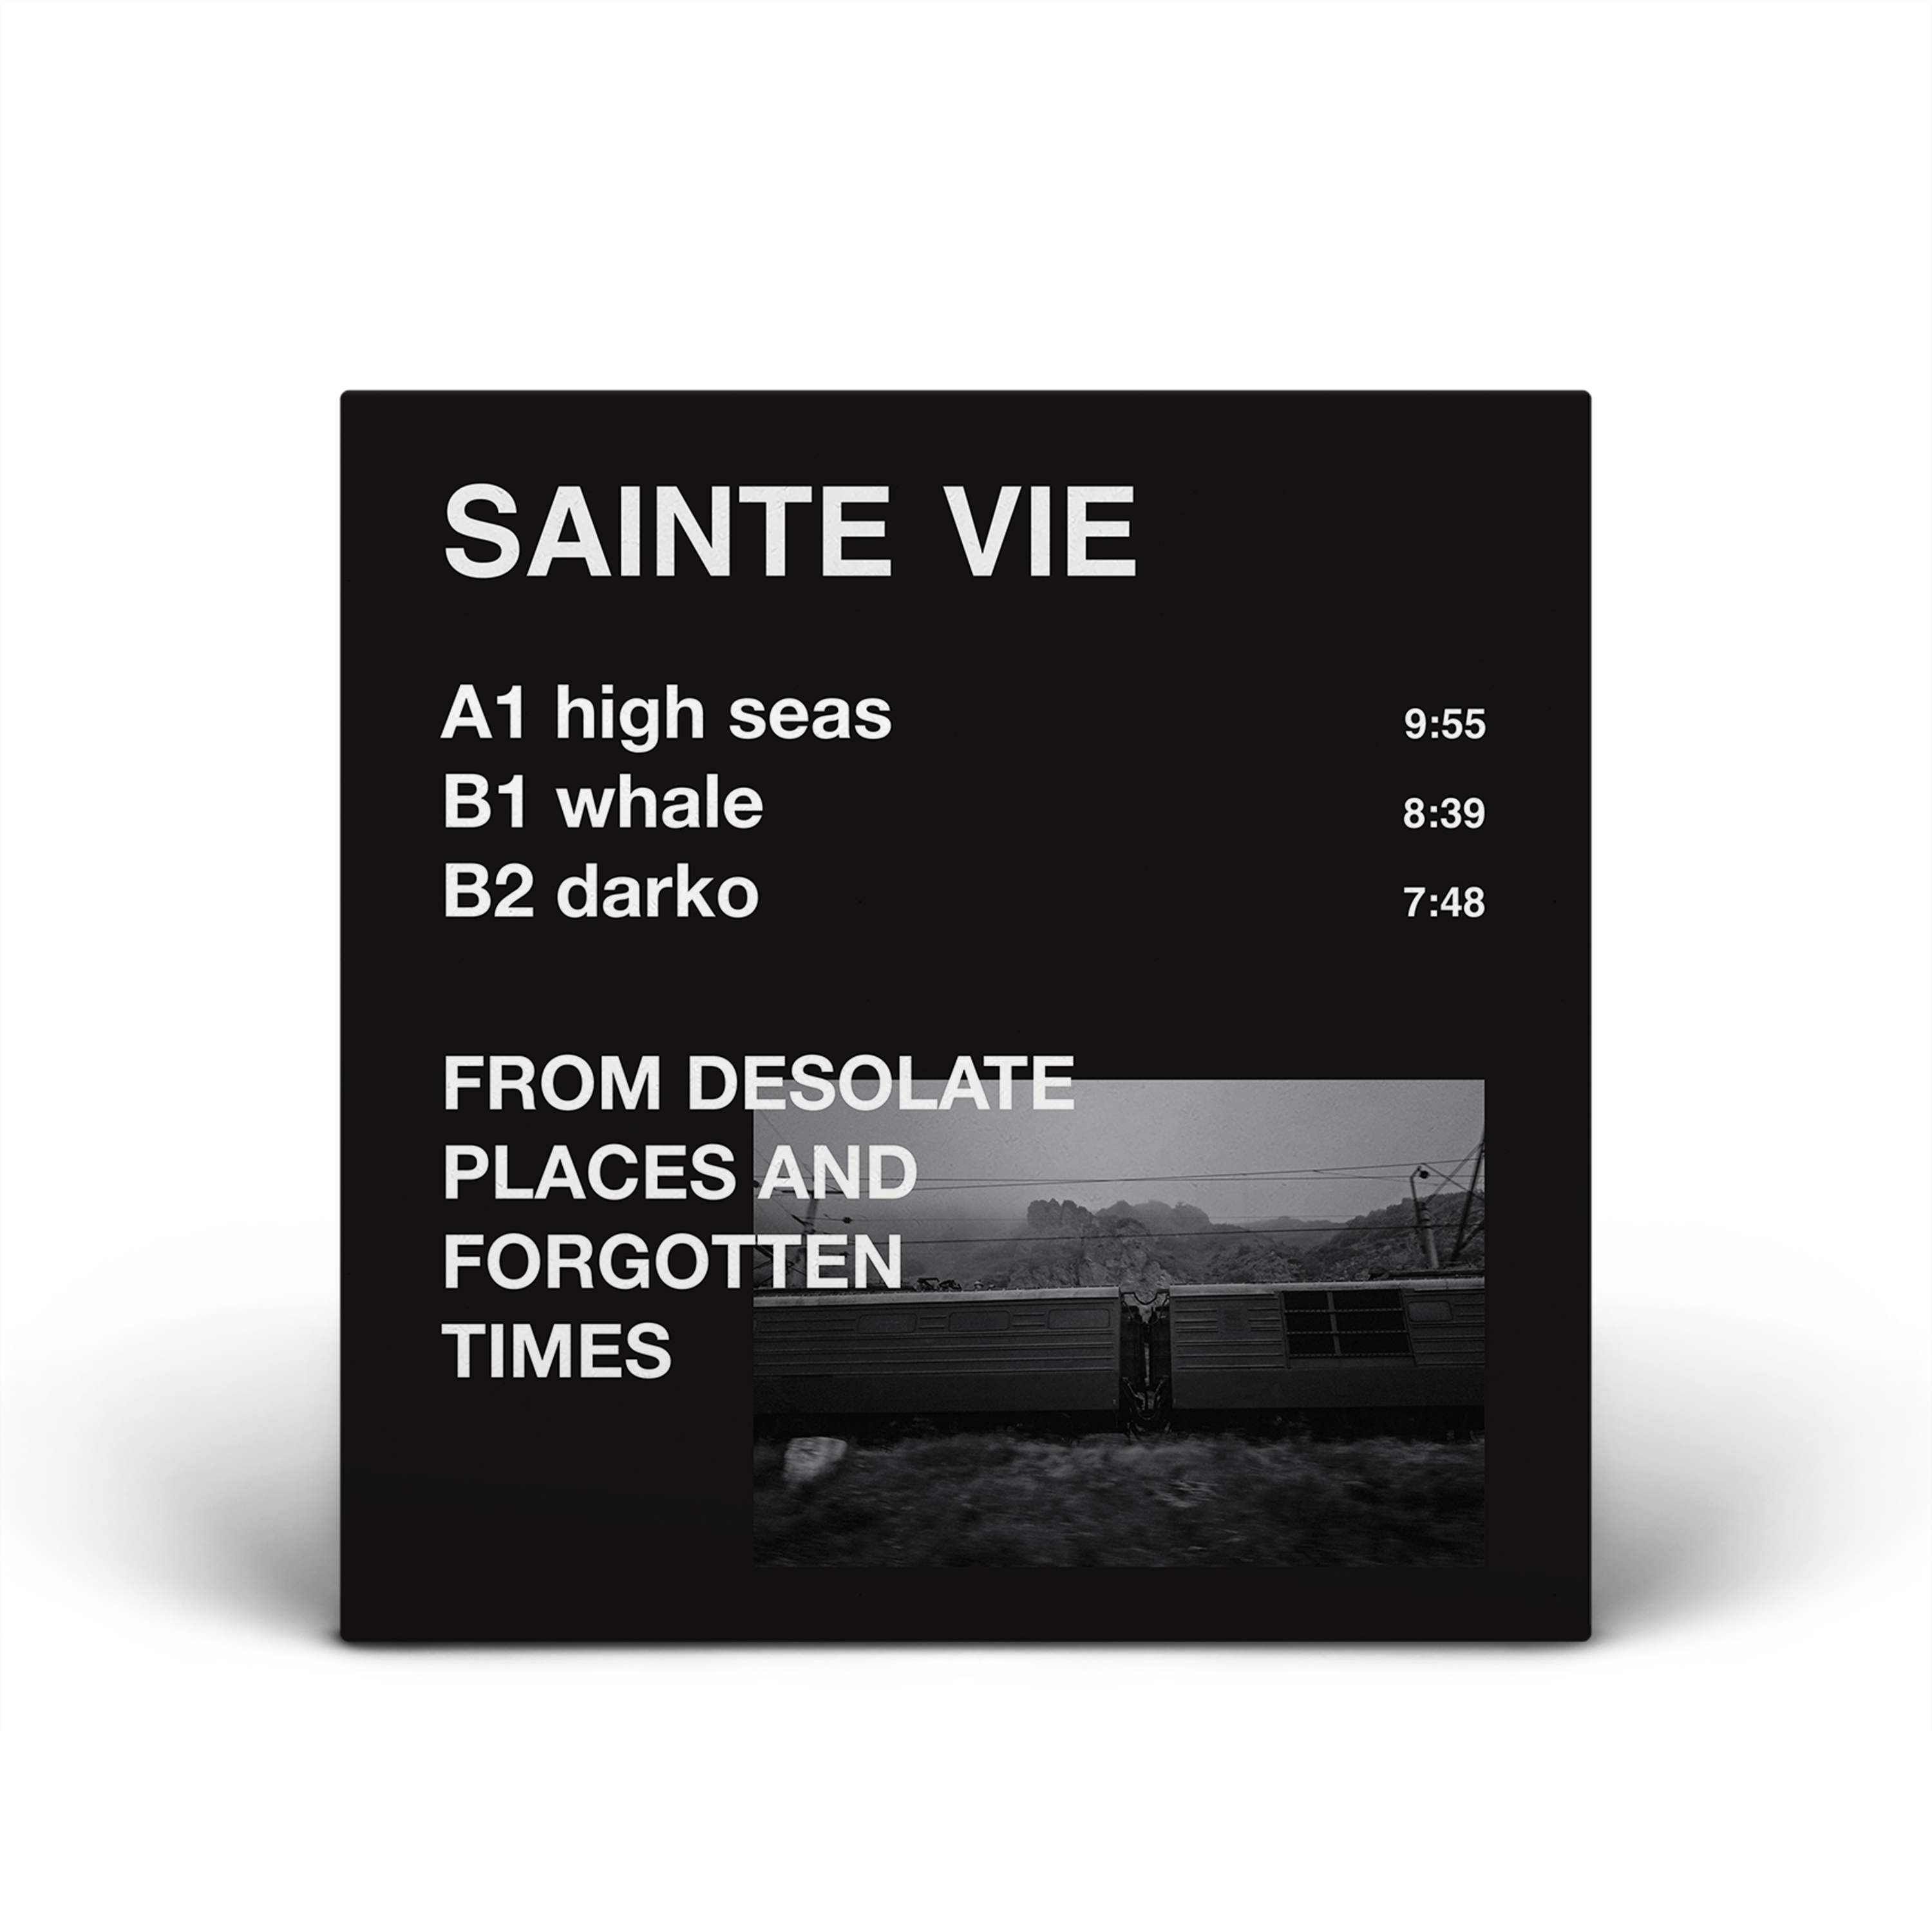 Sainte Vie - From Desolate Places and Forgotten Times EP - AK003 (DIGITAL ARTWORK MOCK-UP)